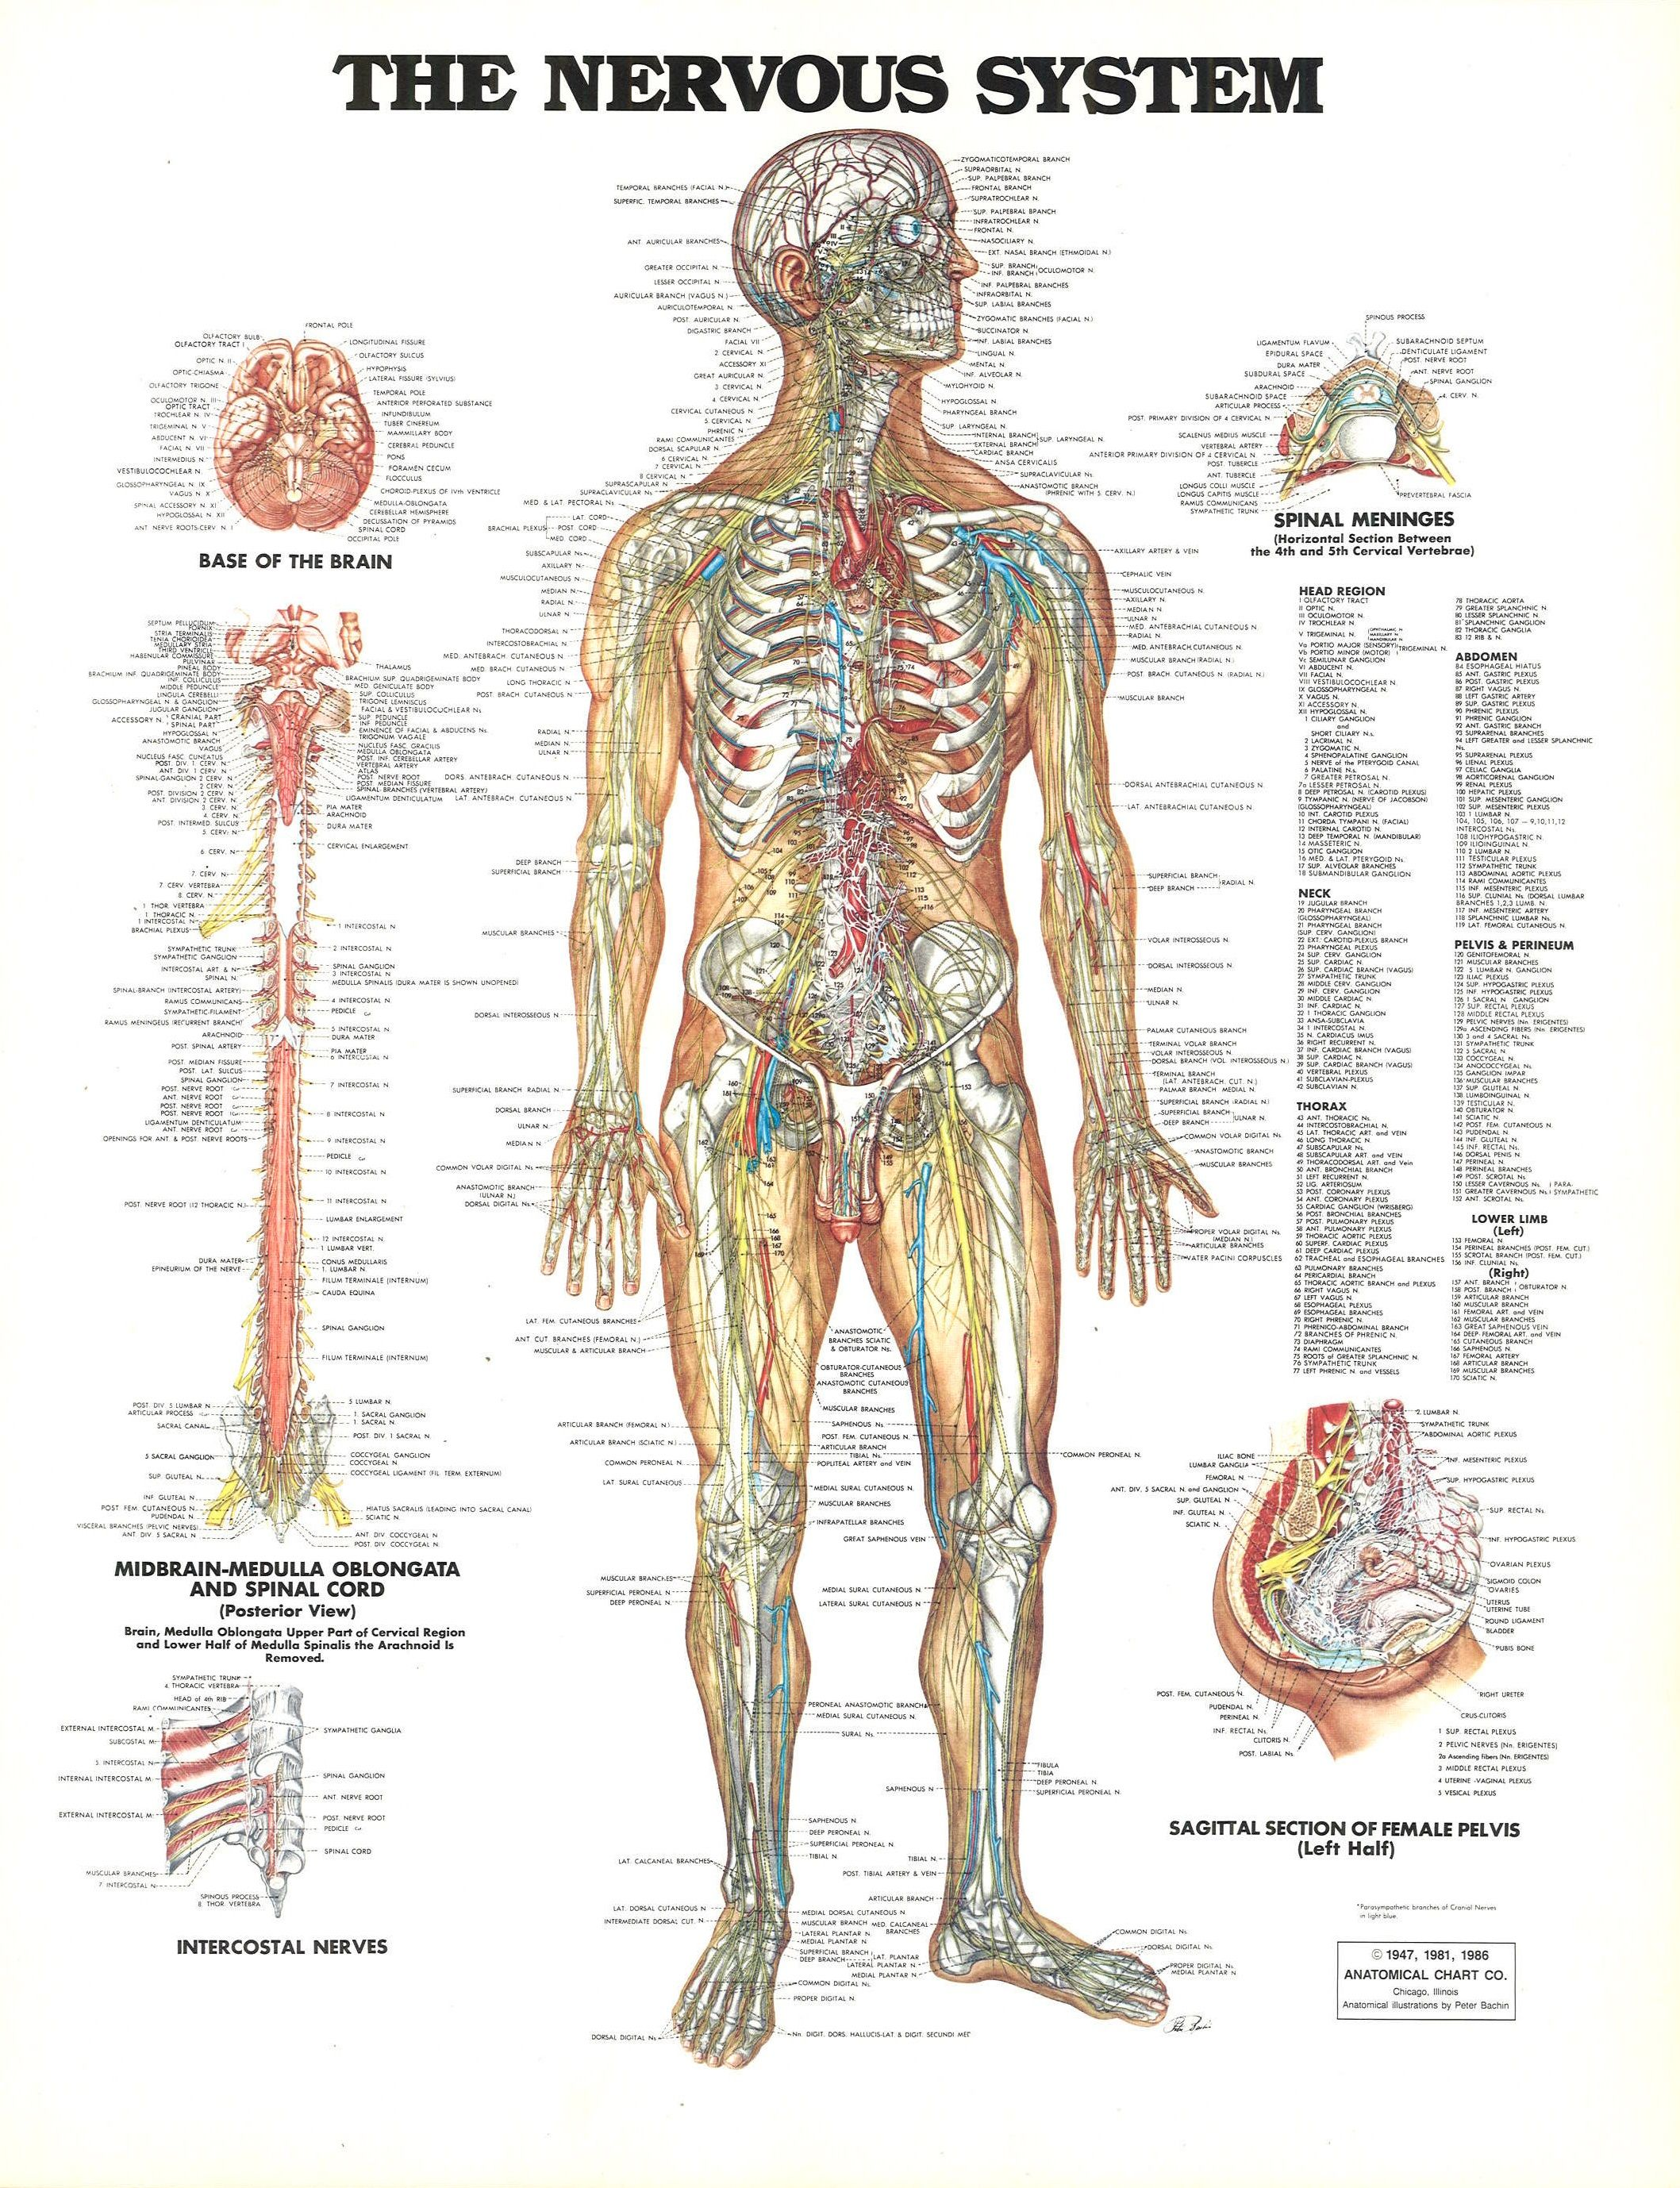 Nervous system diseases | Nervous System Diagram for Kids | Pinterest